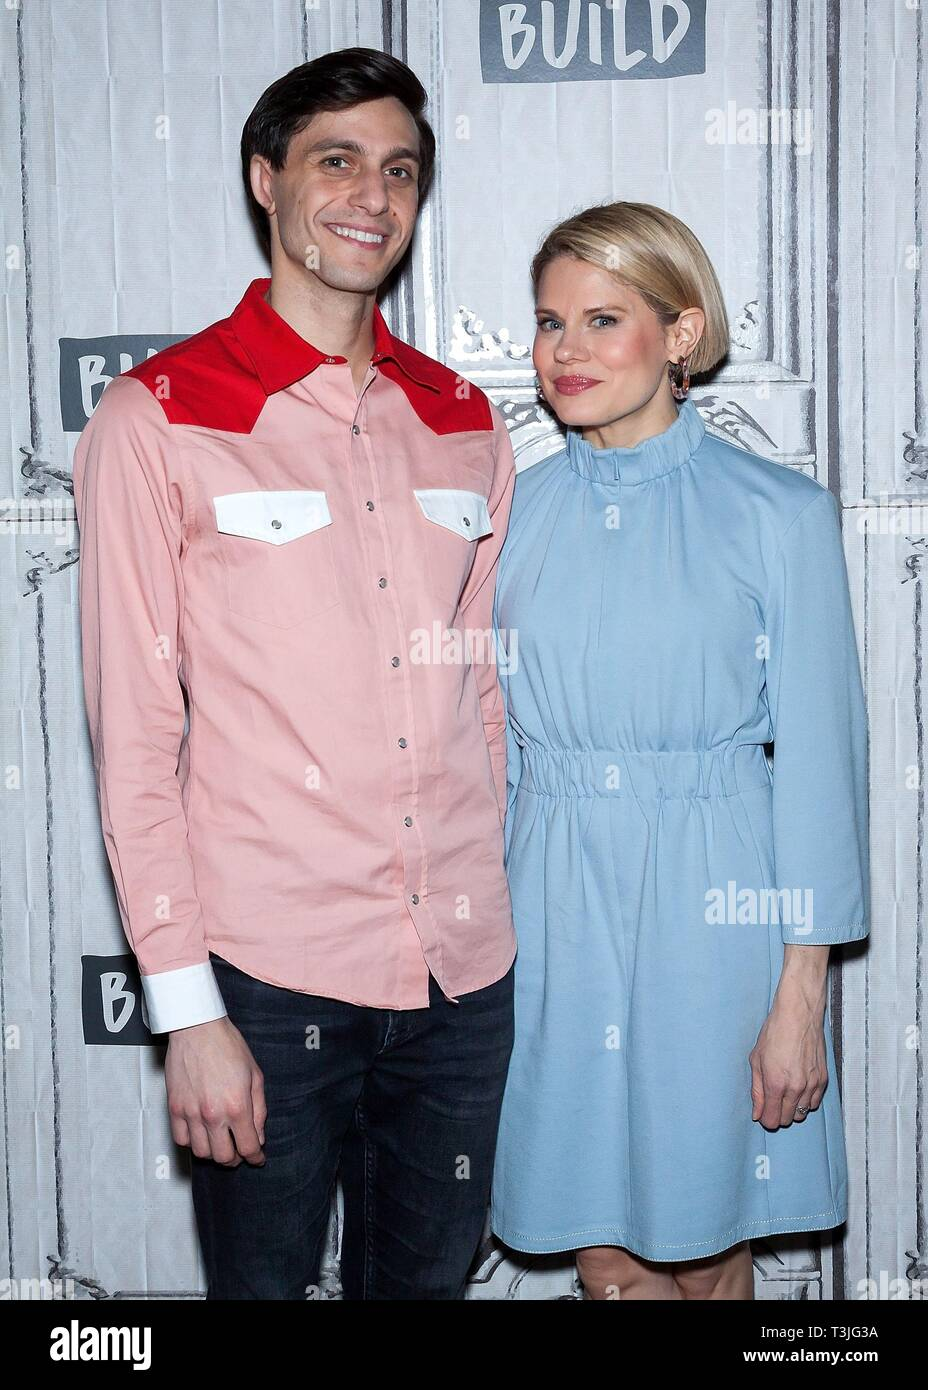 New York, NY, USA. 9th Apr, 2019. Gideon Glick, and, Celia Keenan-Bolger inside for AOL Build Series Celebrity Candids - TUE, AOL Build Series, New York, NY April 9, 2019. Credit: Steve Mack/Everett Collection/Alamy Live News - Stock Image